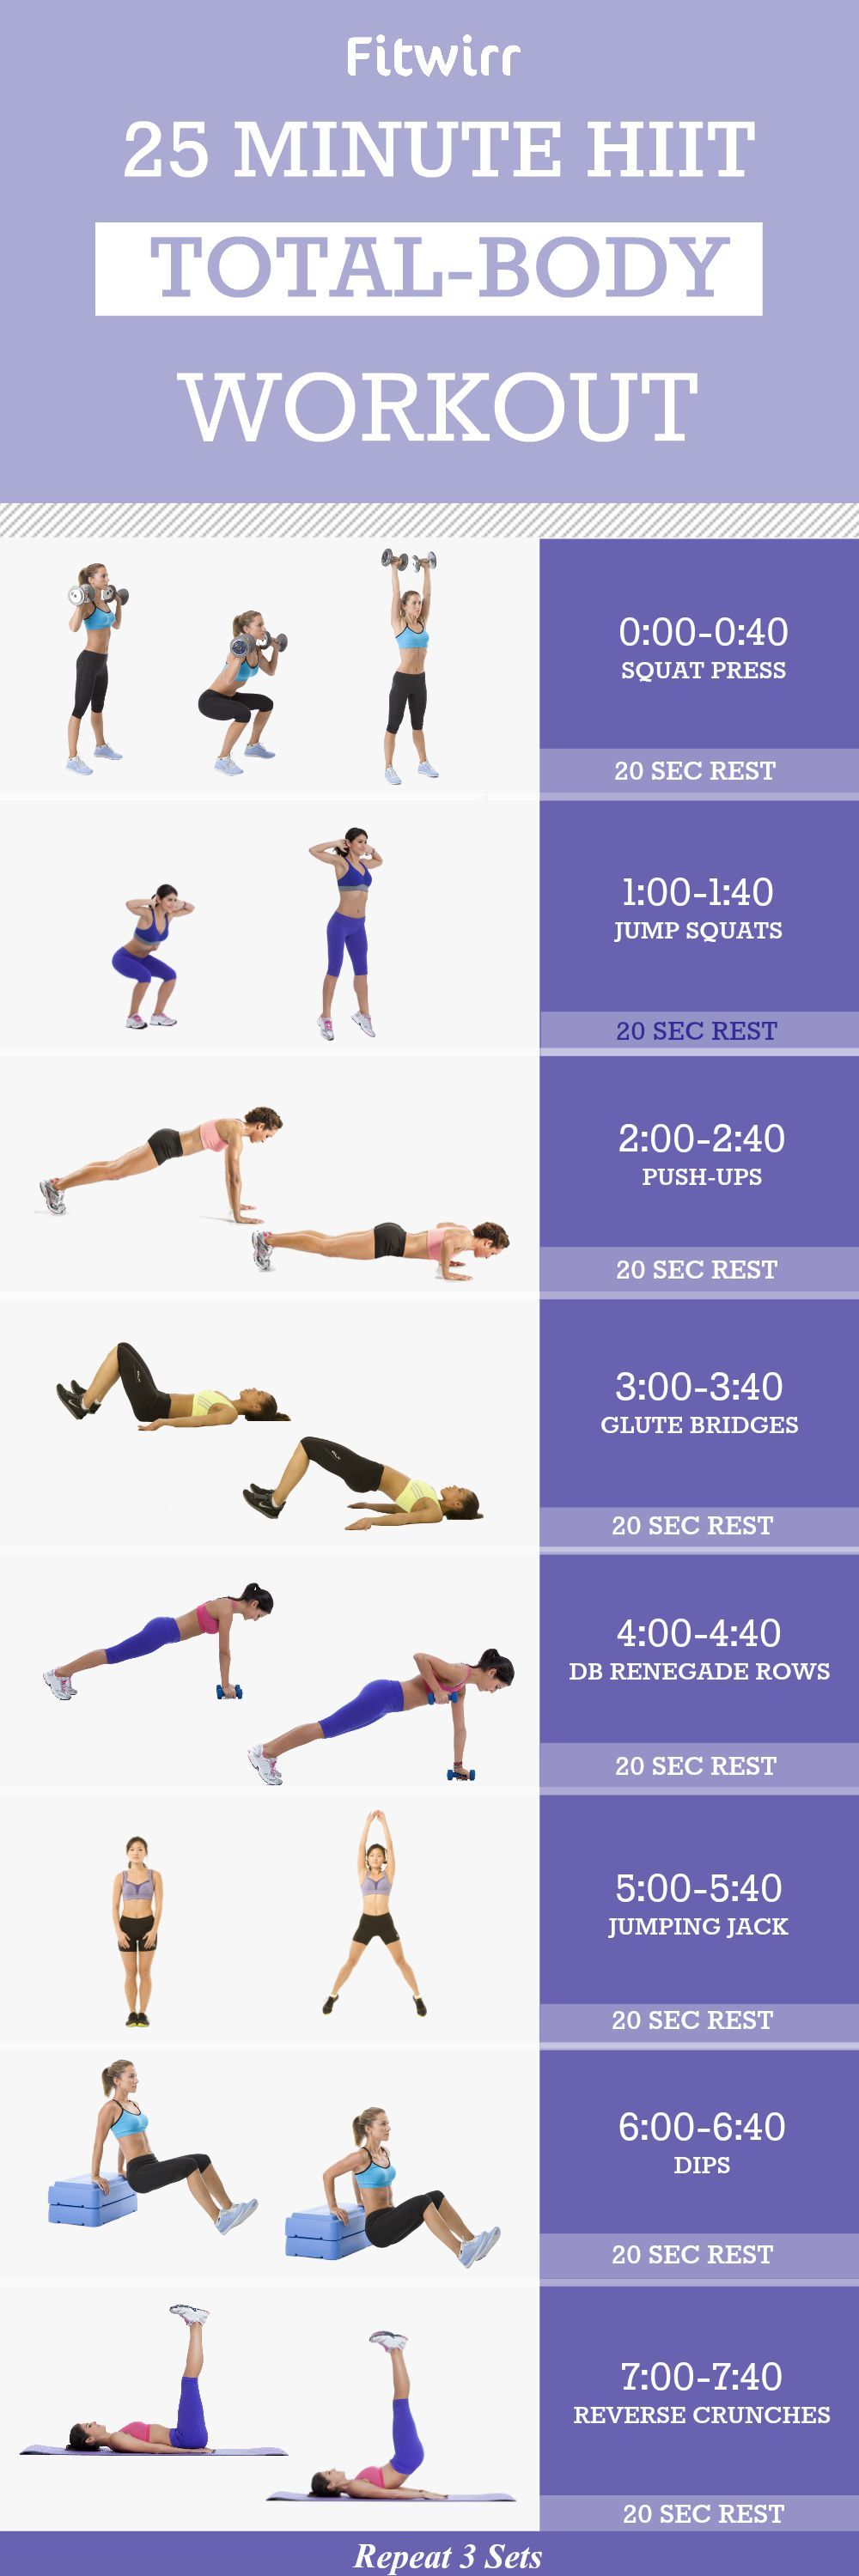 Quick Total-Body HIIT Workout for a Bikini Body | Formes de corps, Exercices de fitness, Exercice